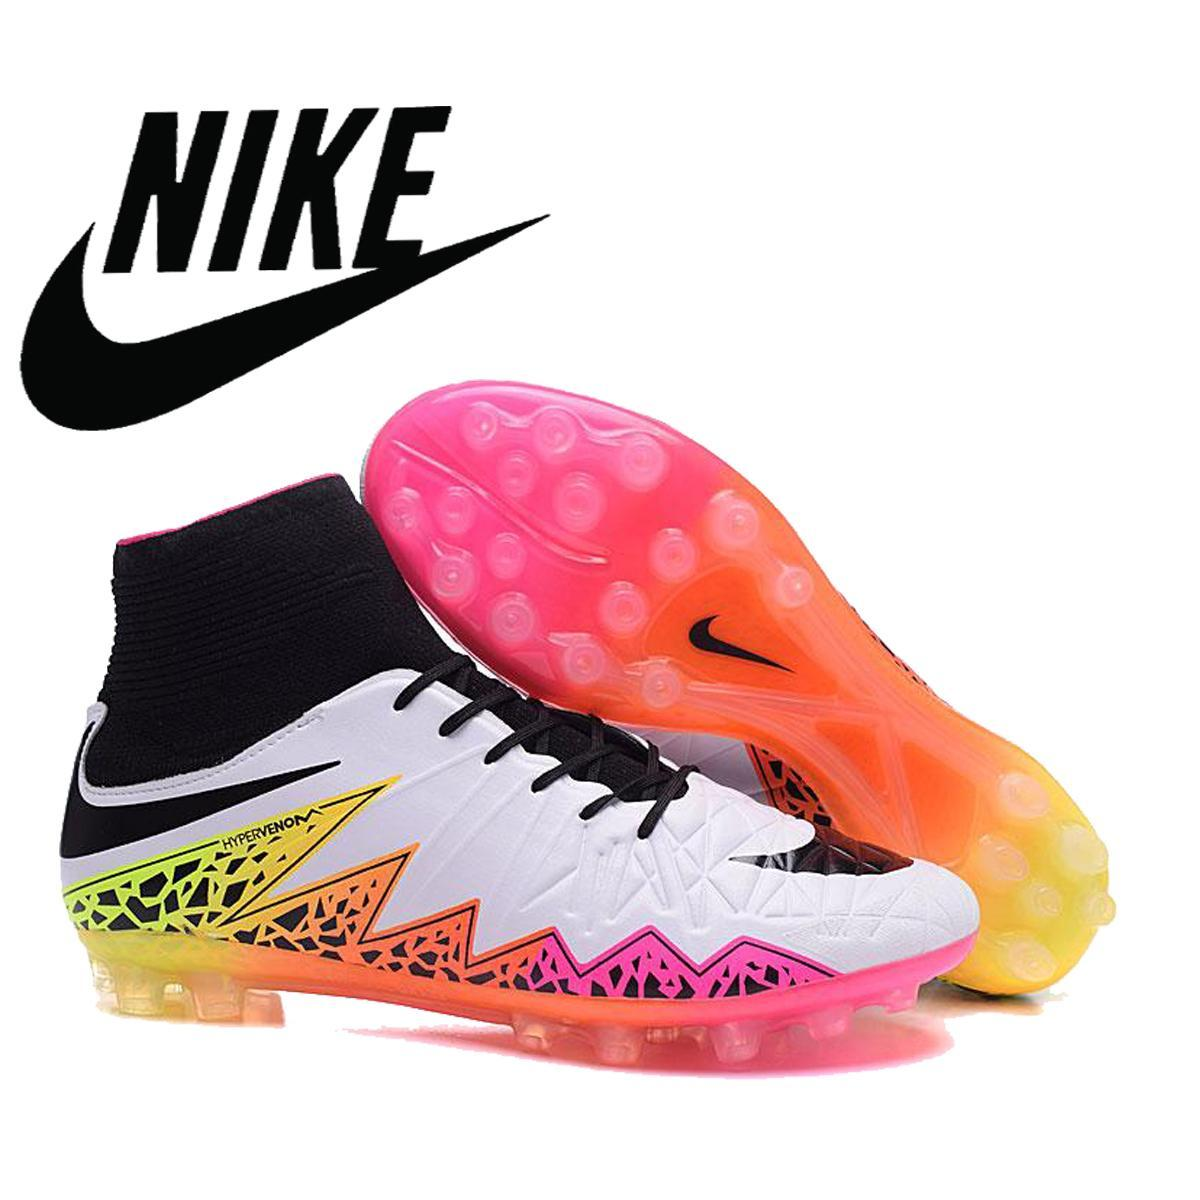 2019 Nike Hypervenom Phantom Ii Fg Soccer Cleats With Acc ... - photo#27